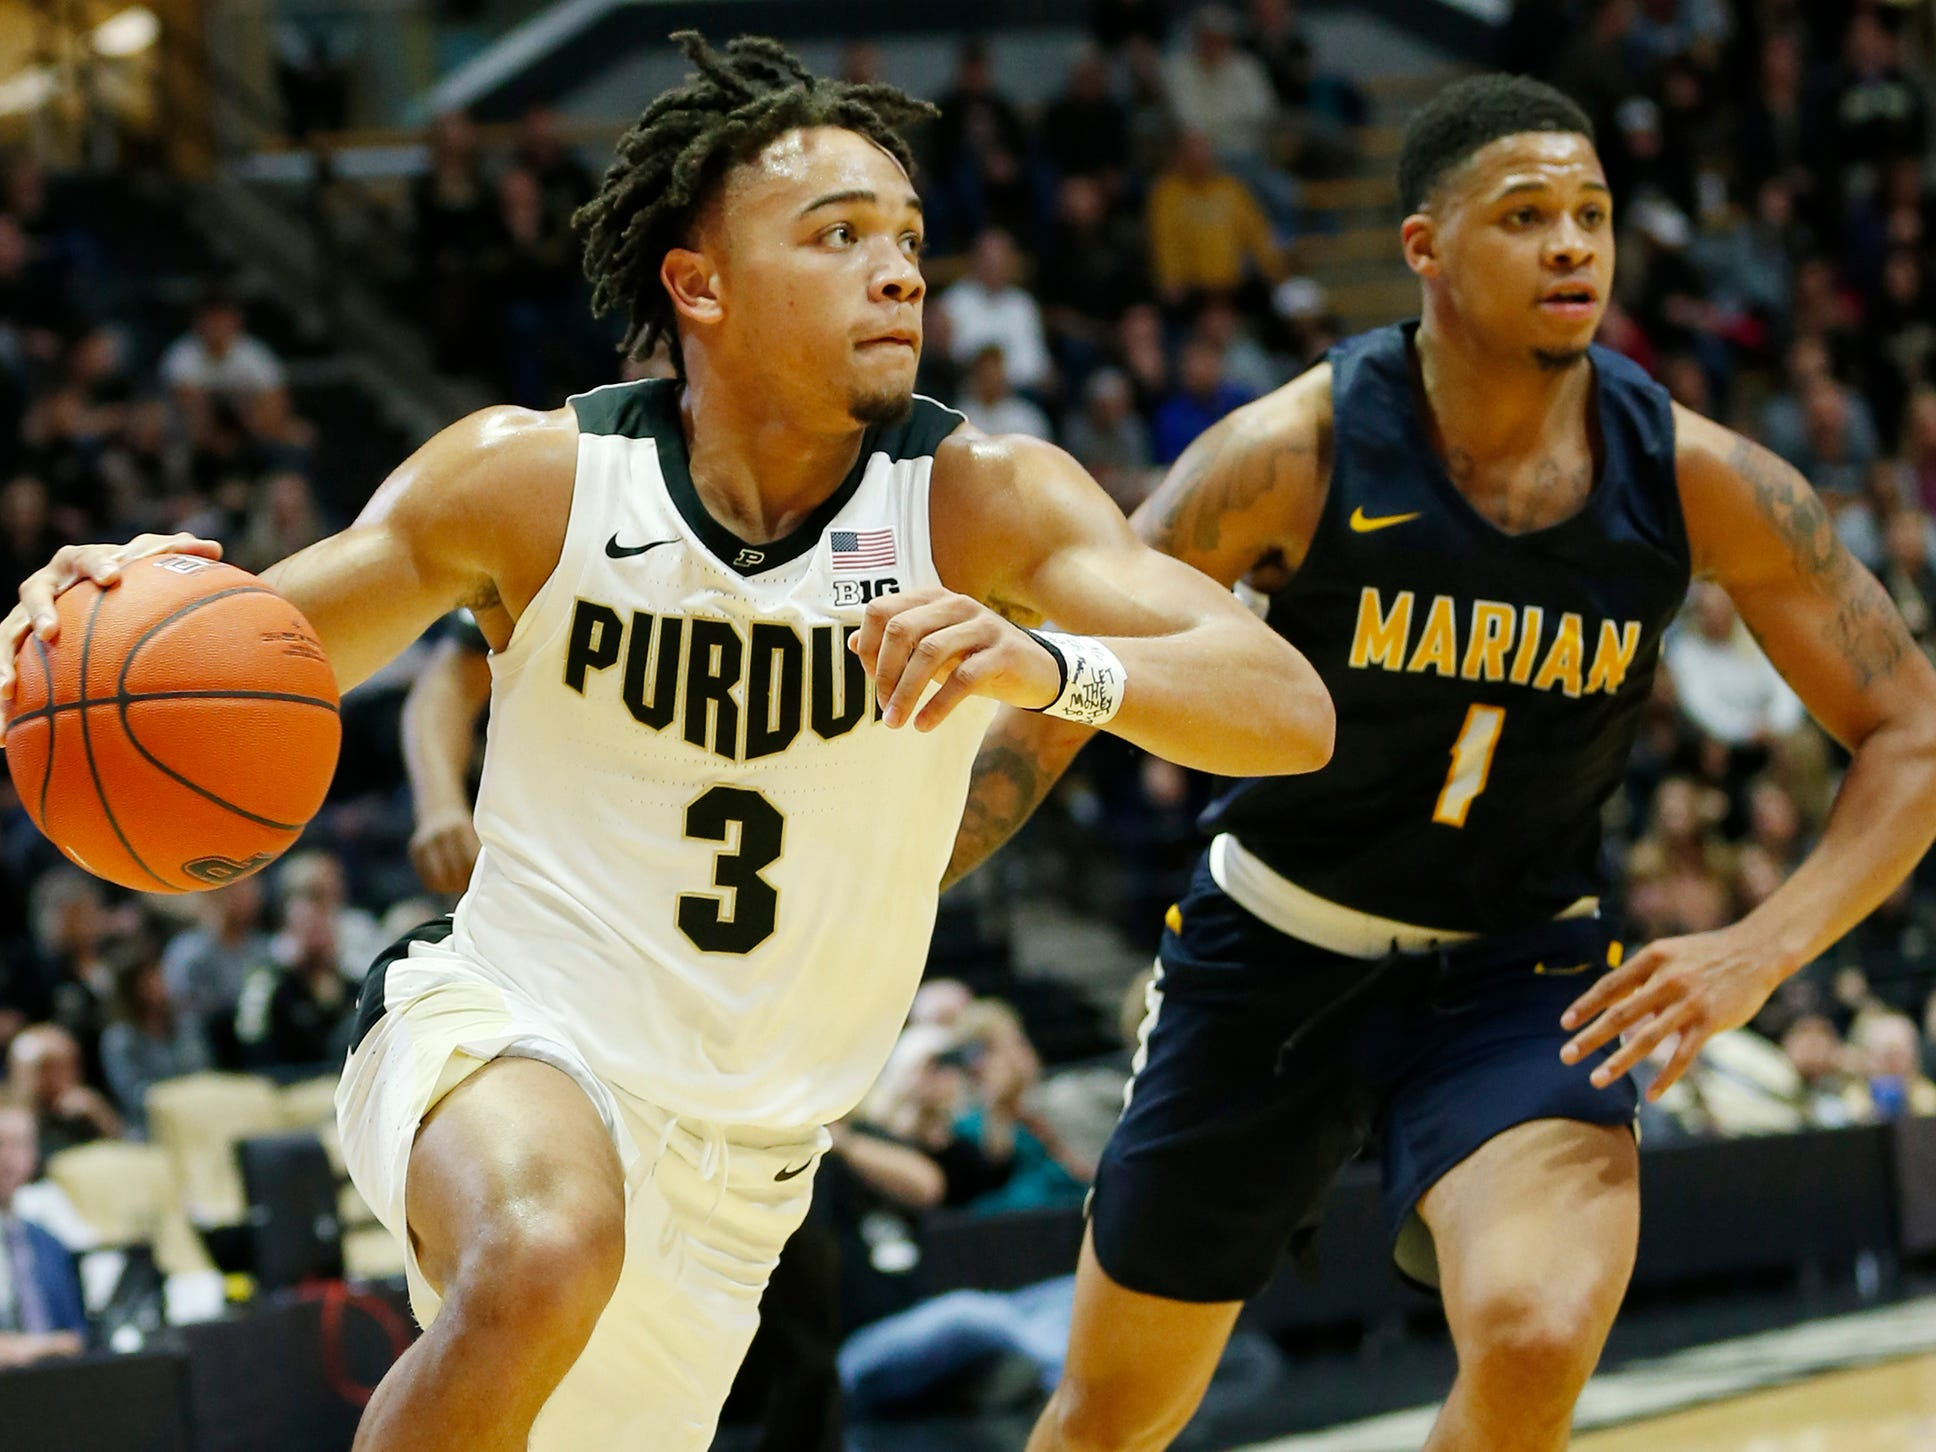 Carsen Edwards of Purdue turns the corner on TJ Henderson of Marian University in the first half Thursday, November 1, 2018, at Mackey Arena. Purdue defeated Marian University 75-56.